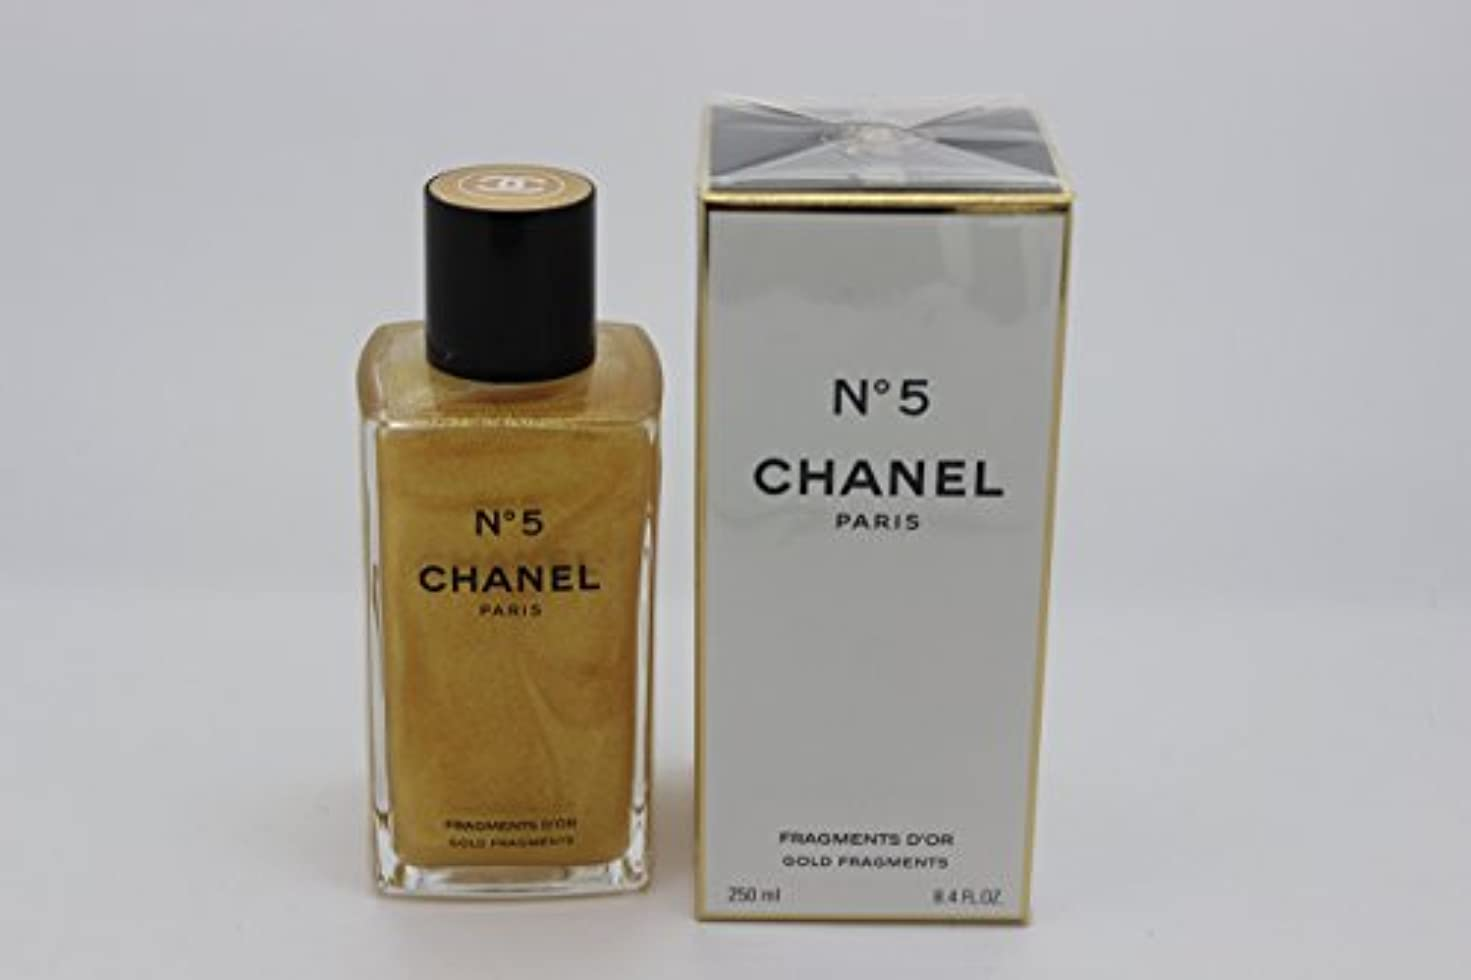 一時的進捗すり減るChanel No. 5 (シャネル No. 5) 8.4 oz (252ml) Gold Fragments Shimmering Body Gel for Women